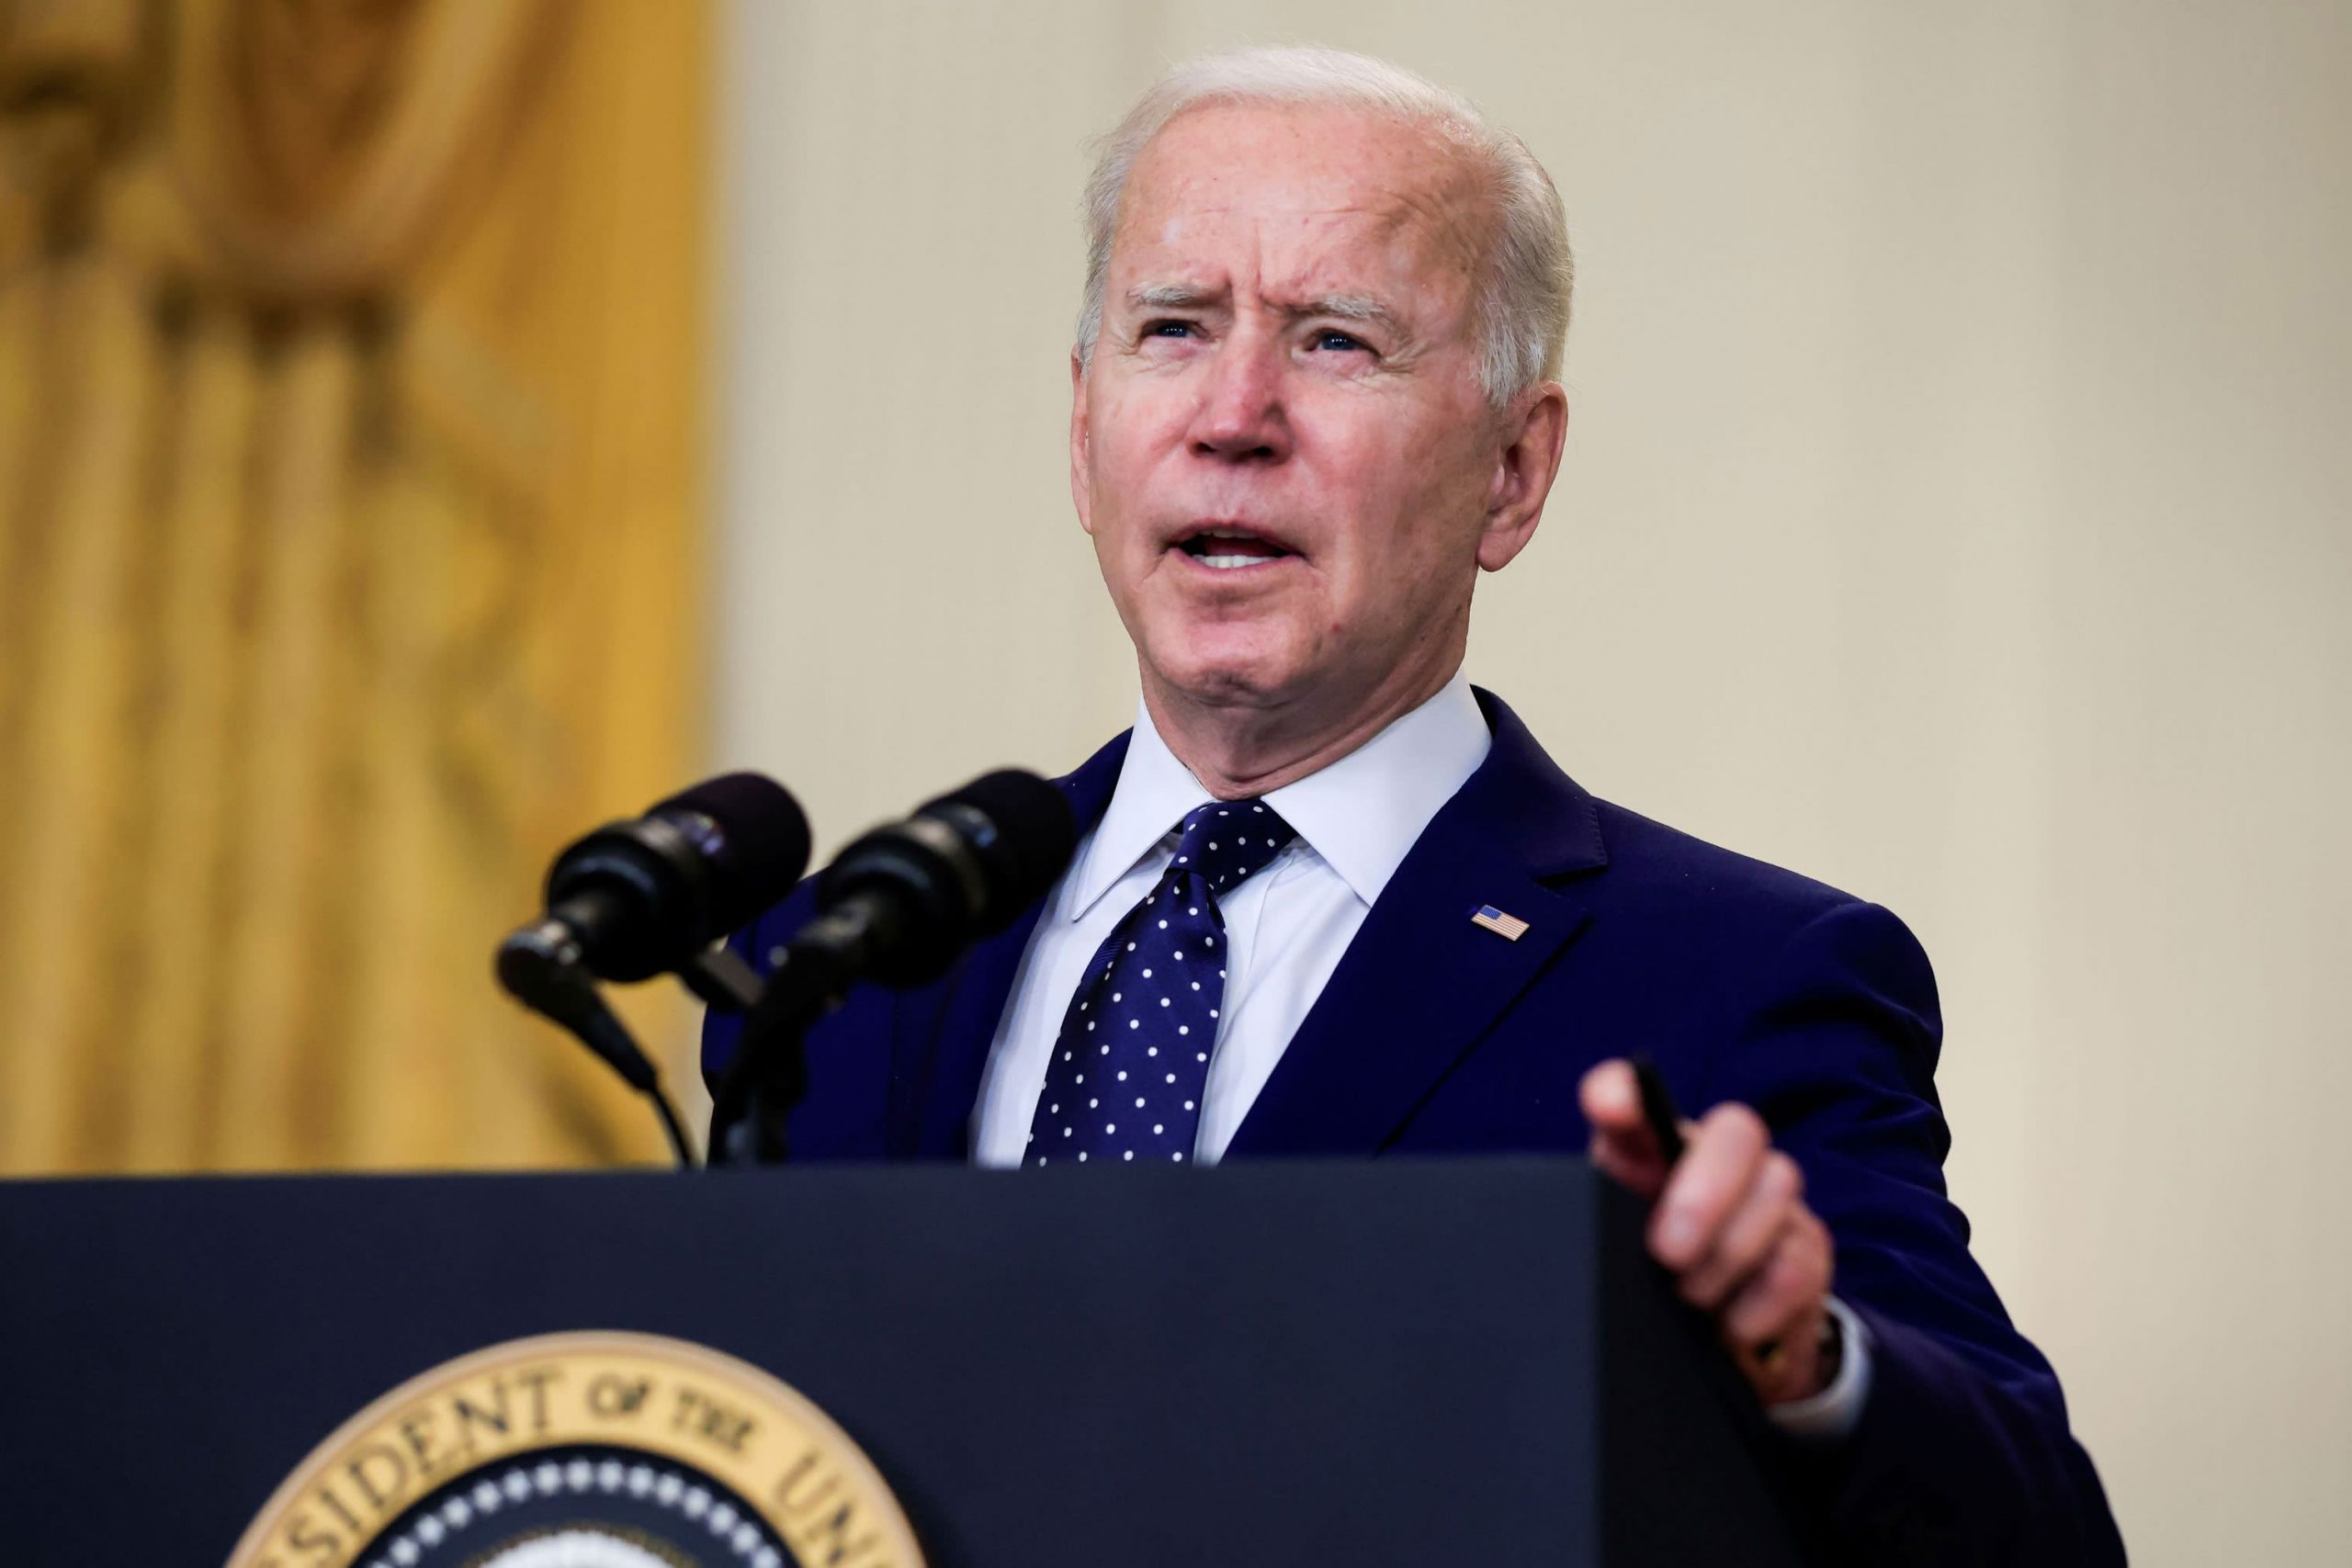 Biden will 'take further actions' if Russia escalates actions against U.S.